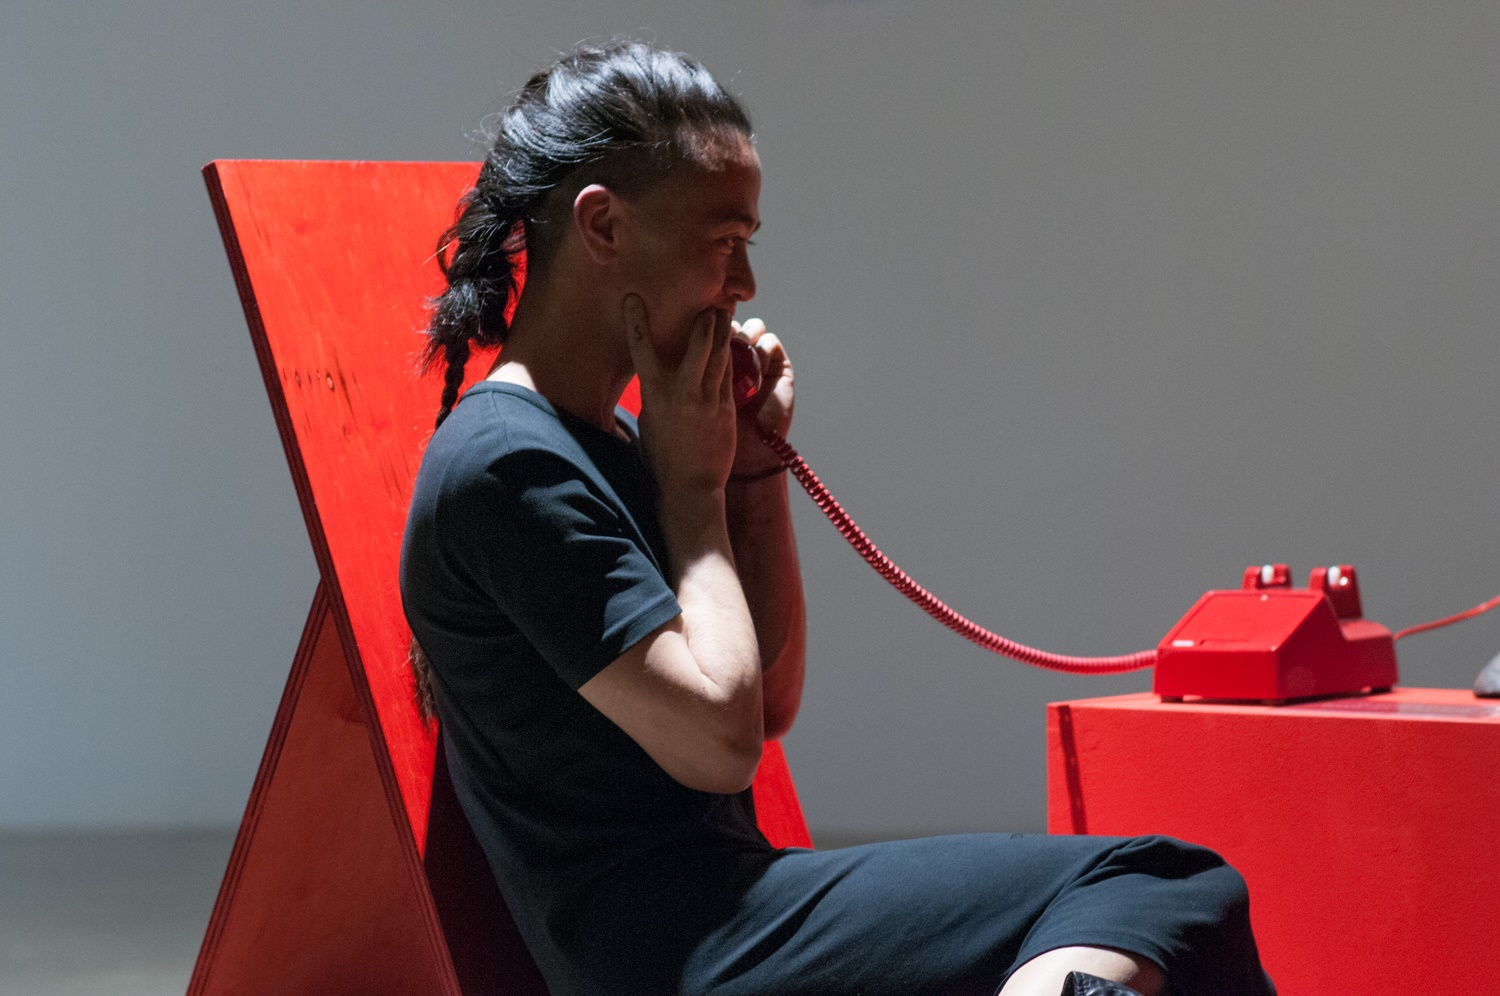 The INTERVIEW: Red, Red Future